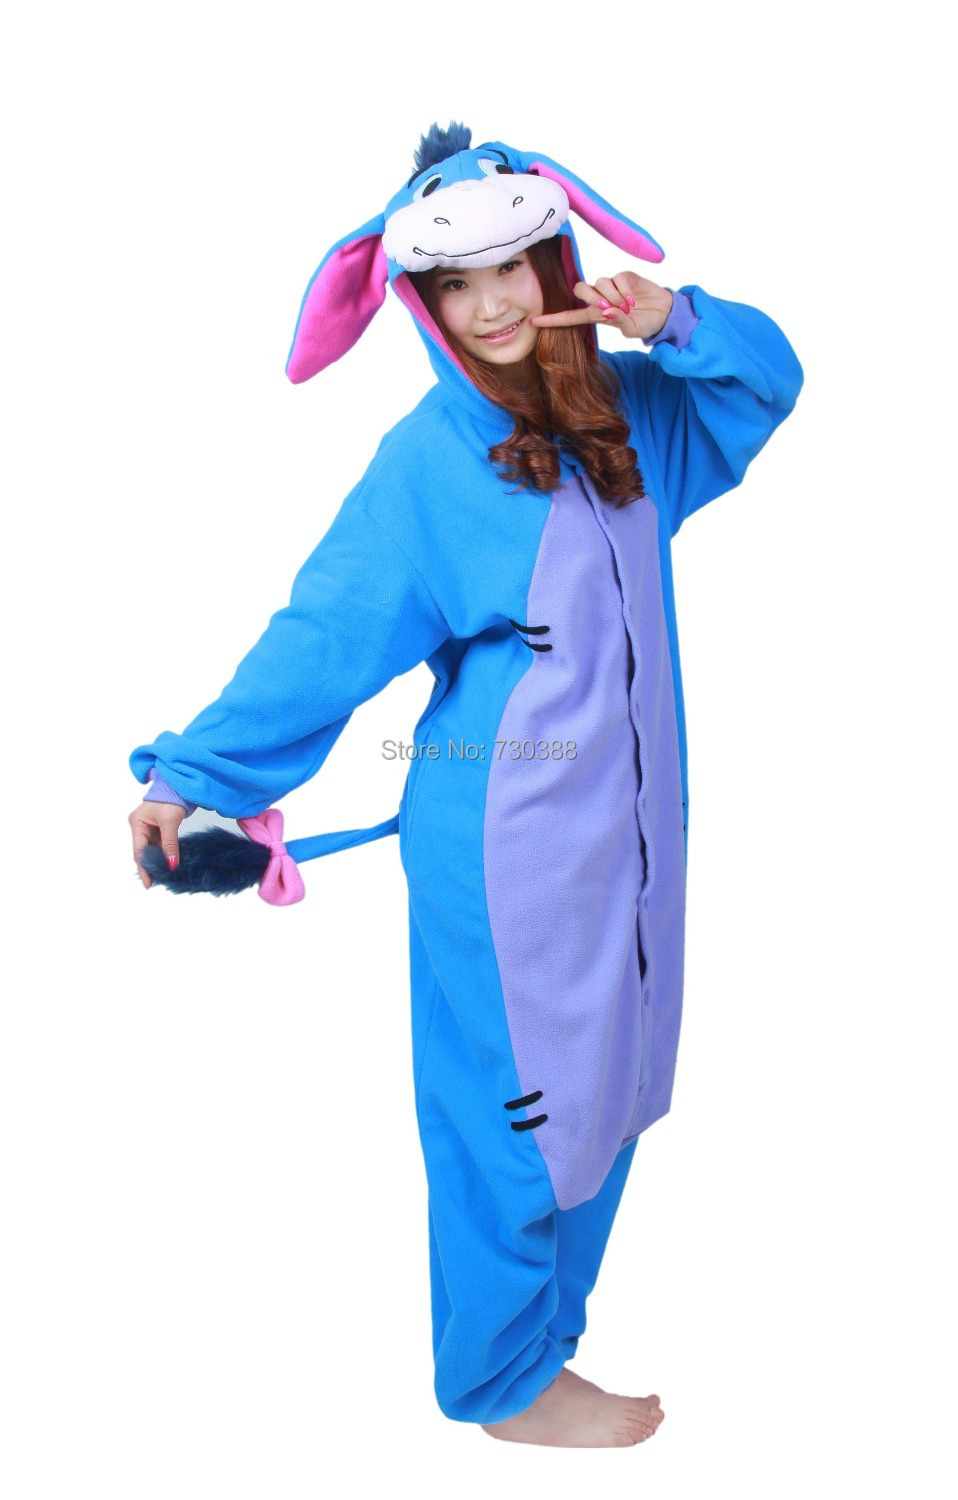 Halloween Cosplay Adult Anime Animal Eeyore Donkey Pajamas One Piece Unisex Onesie Party Costumes Sleepwear Jumpsuit-in Boys Costumes from Novelty u0026 Special ...  sc 1 st  AliExpress.com & Halloween Cosplay Adult Anime Animal Eeyore Donkey Pajamas One Piece ...